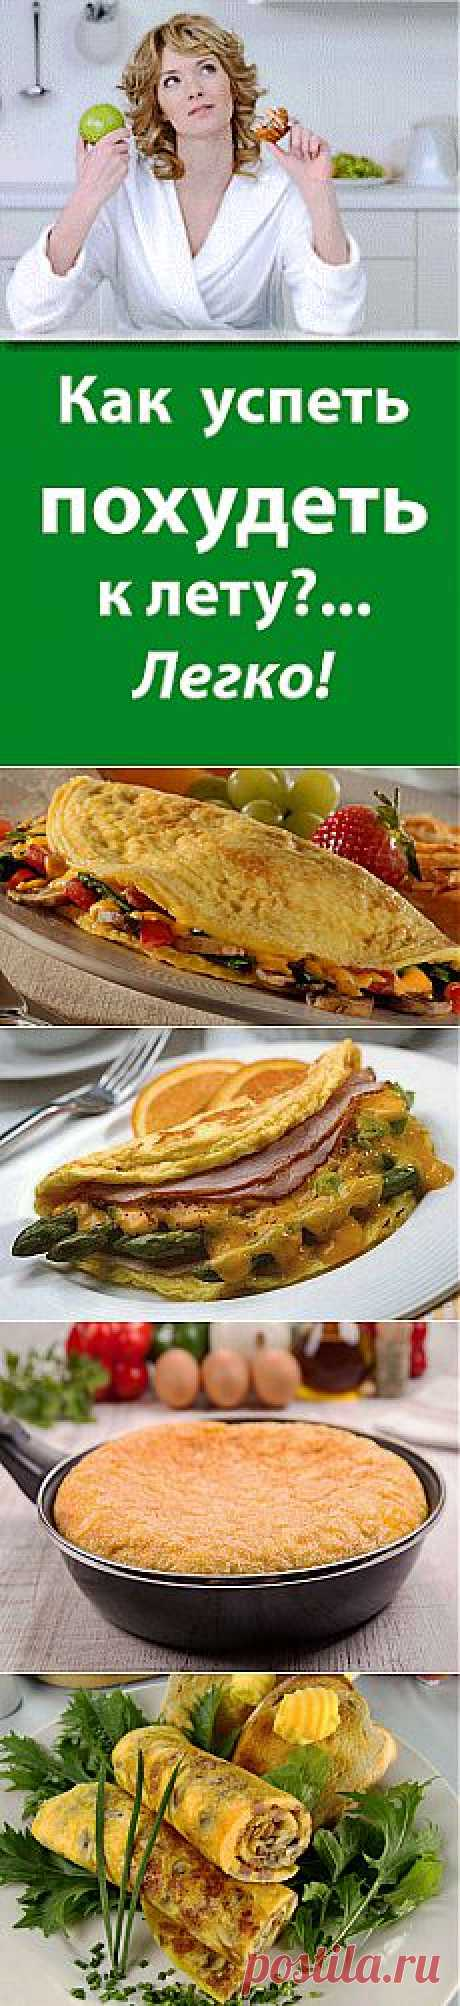 This tasty dish - an omelet.